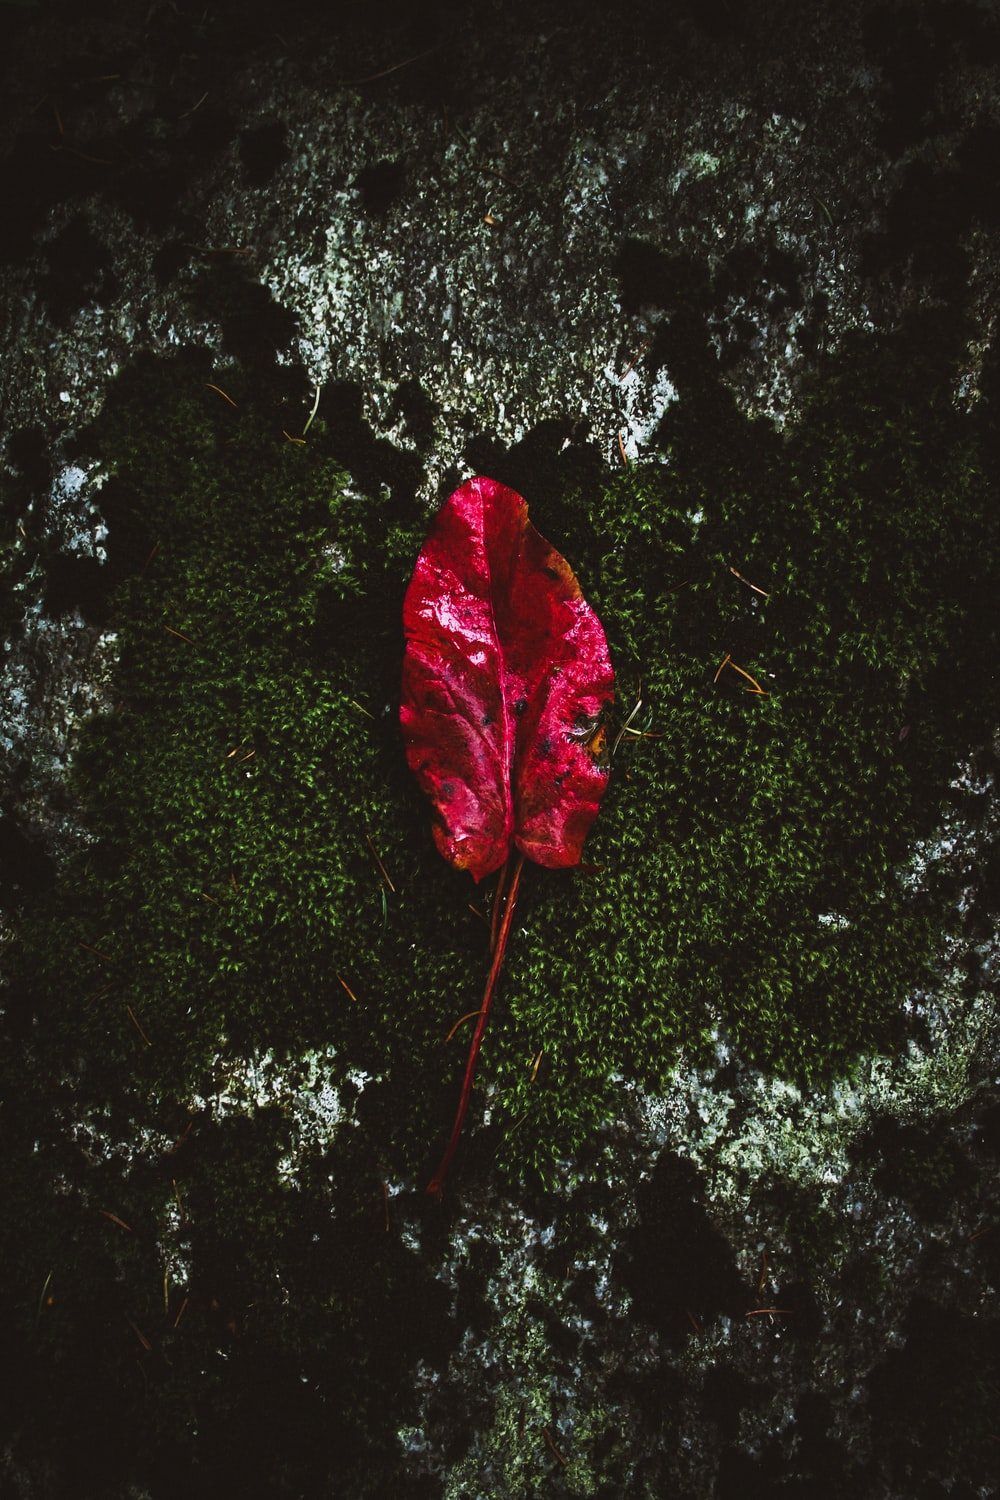 red leaf on green plant